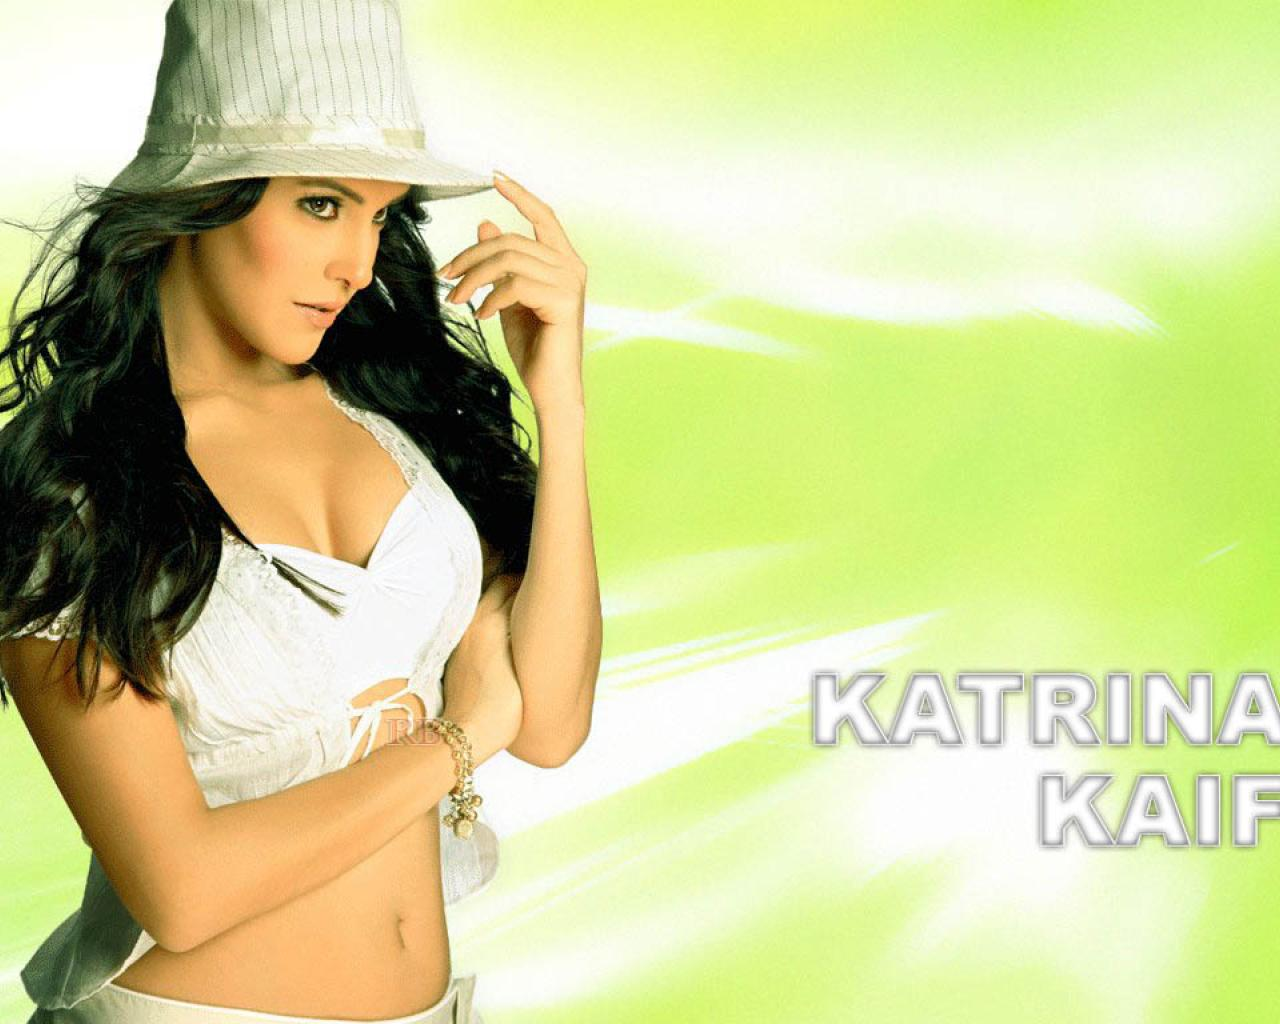 Katrina kaif hot structure